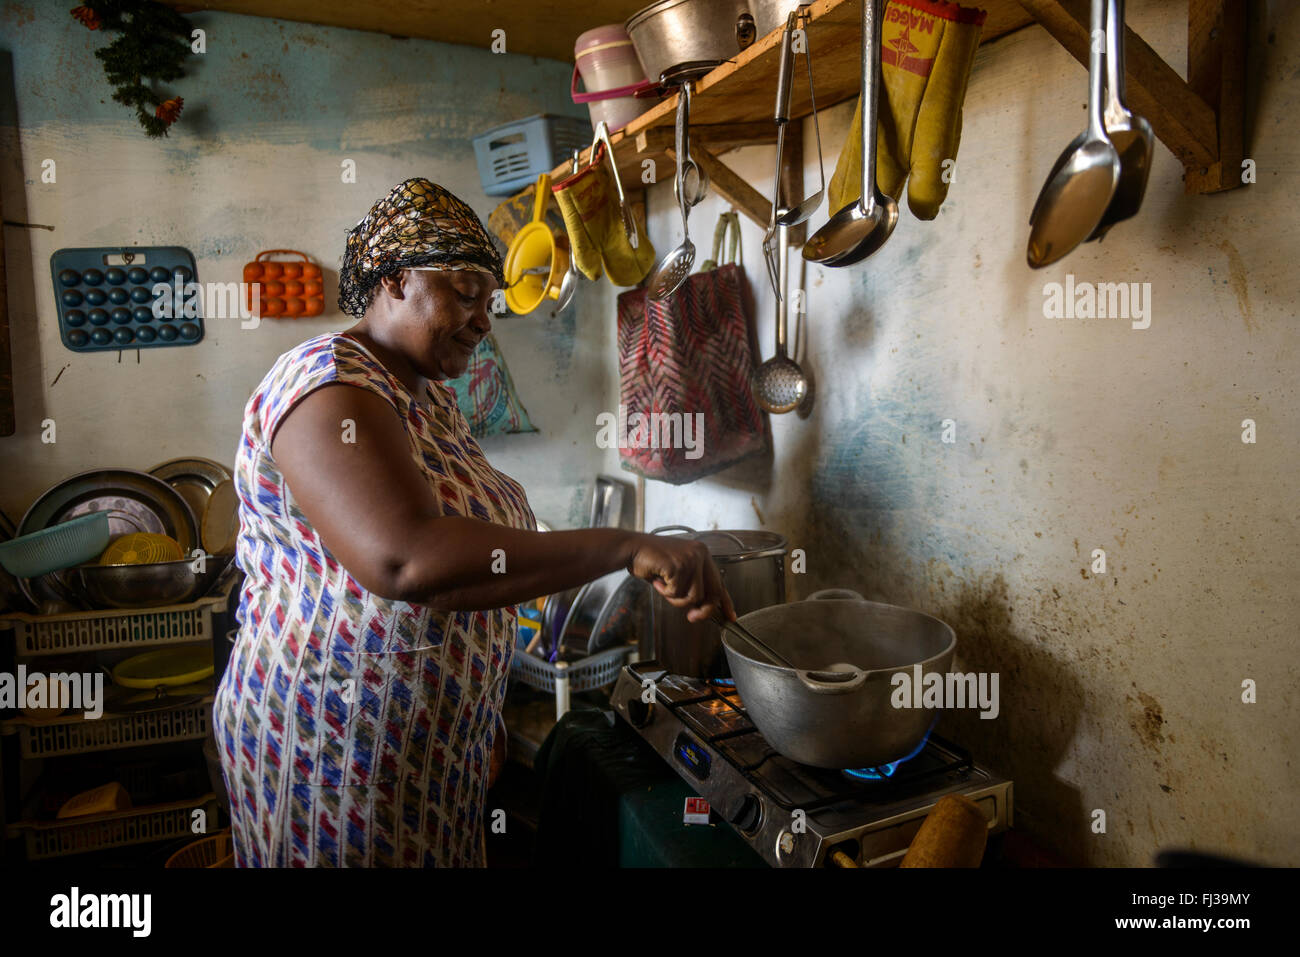 Woman cooking in kitchen, Cameroon, Africa - Stock Image